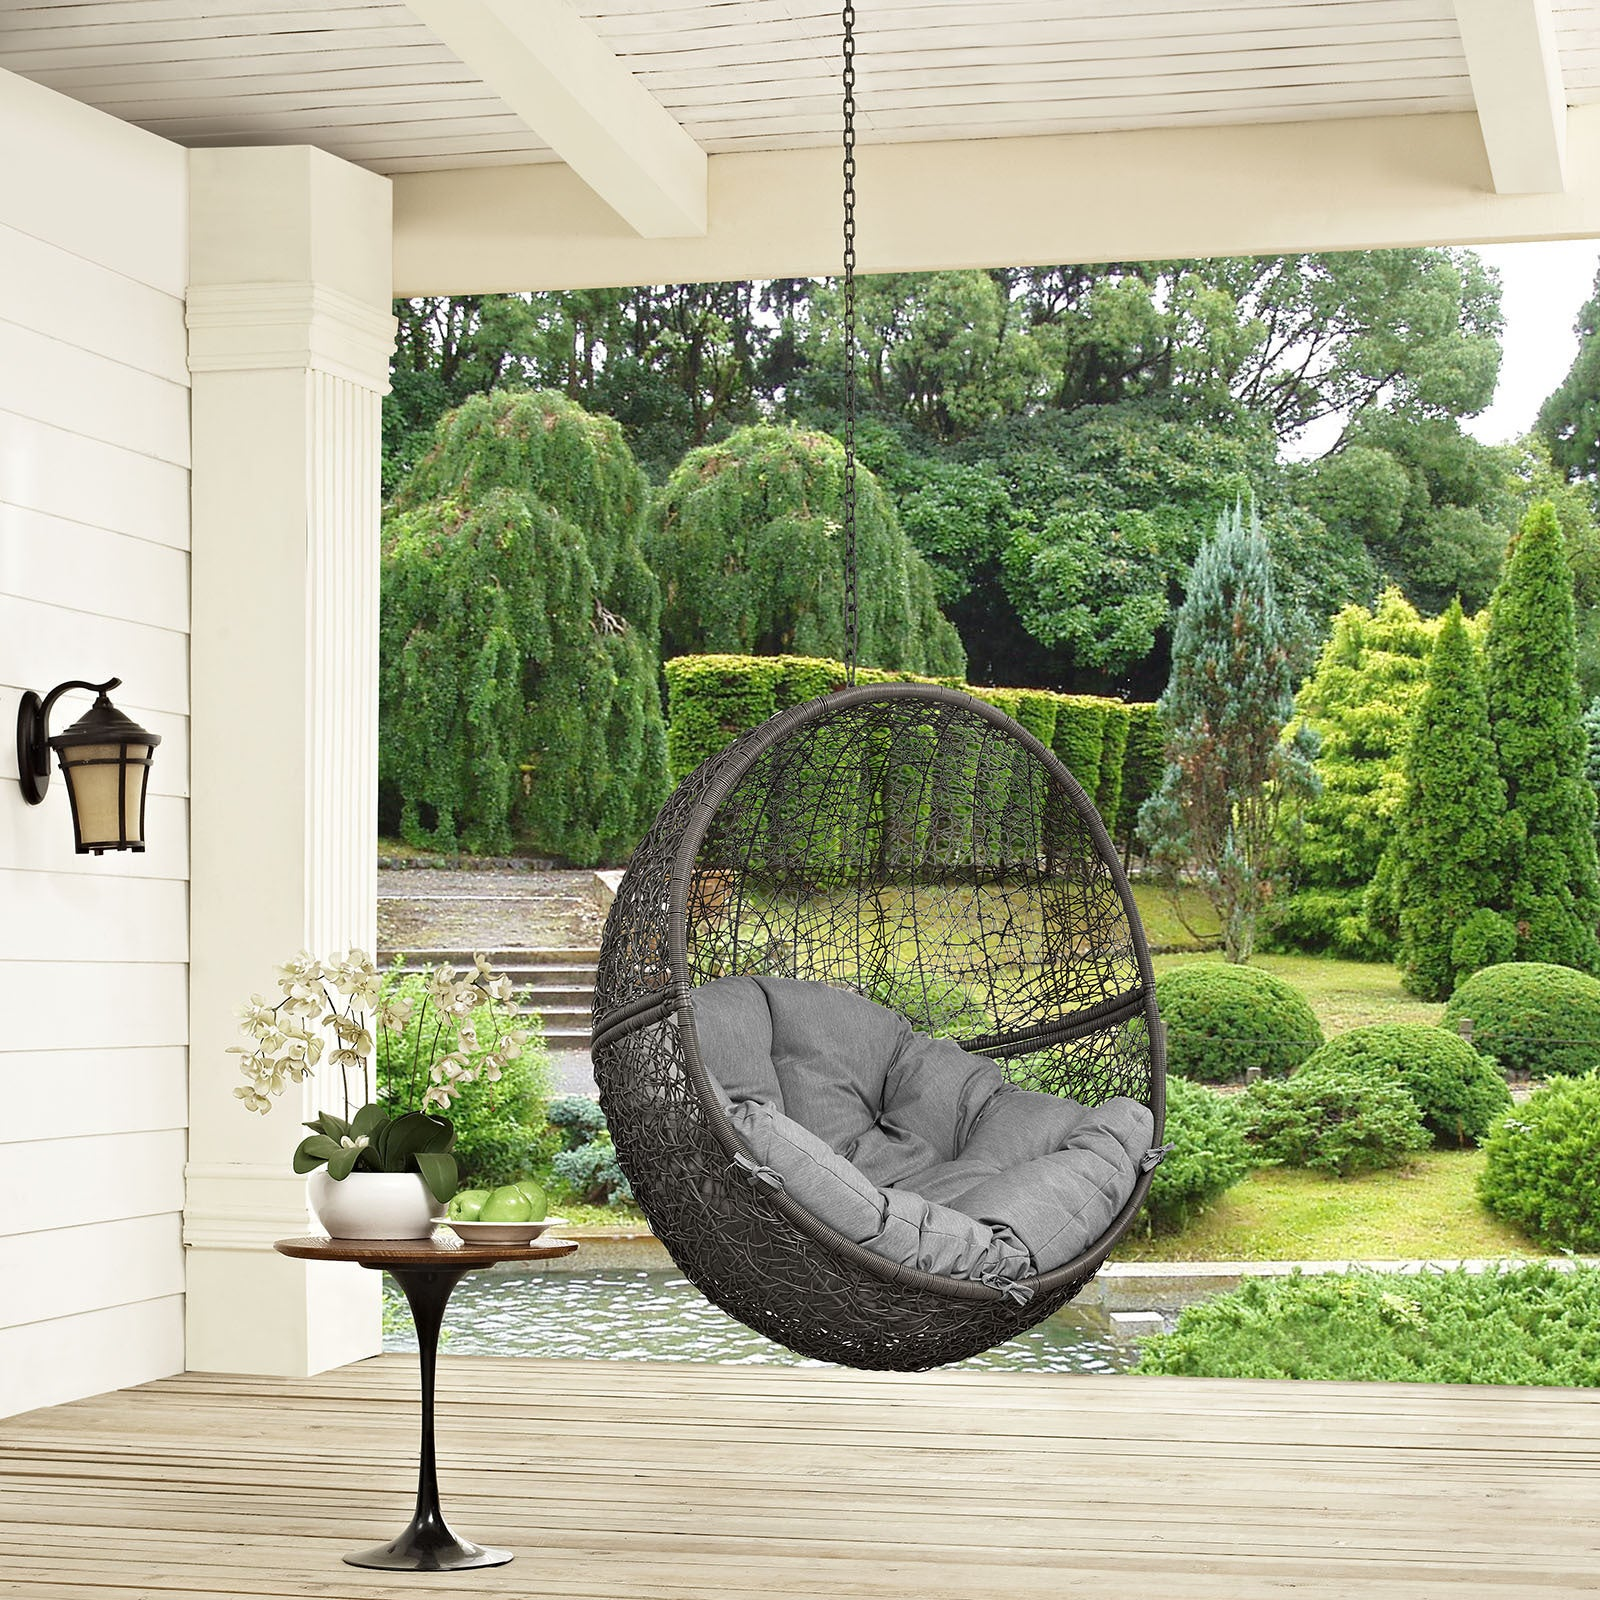 ii garden image blue best small patio csd swing most exemplary design front furniture benches outdoor bench on backless exterior vintage emerson swings ideas marvelous porch storage